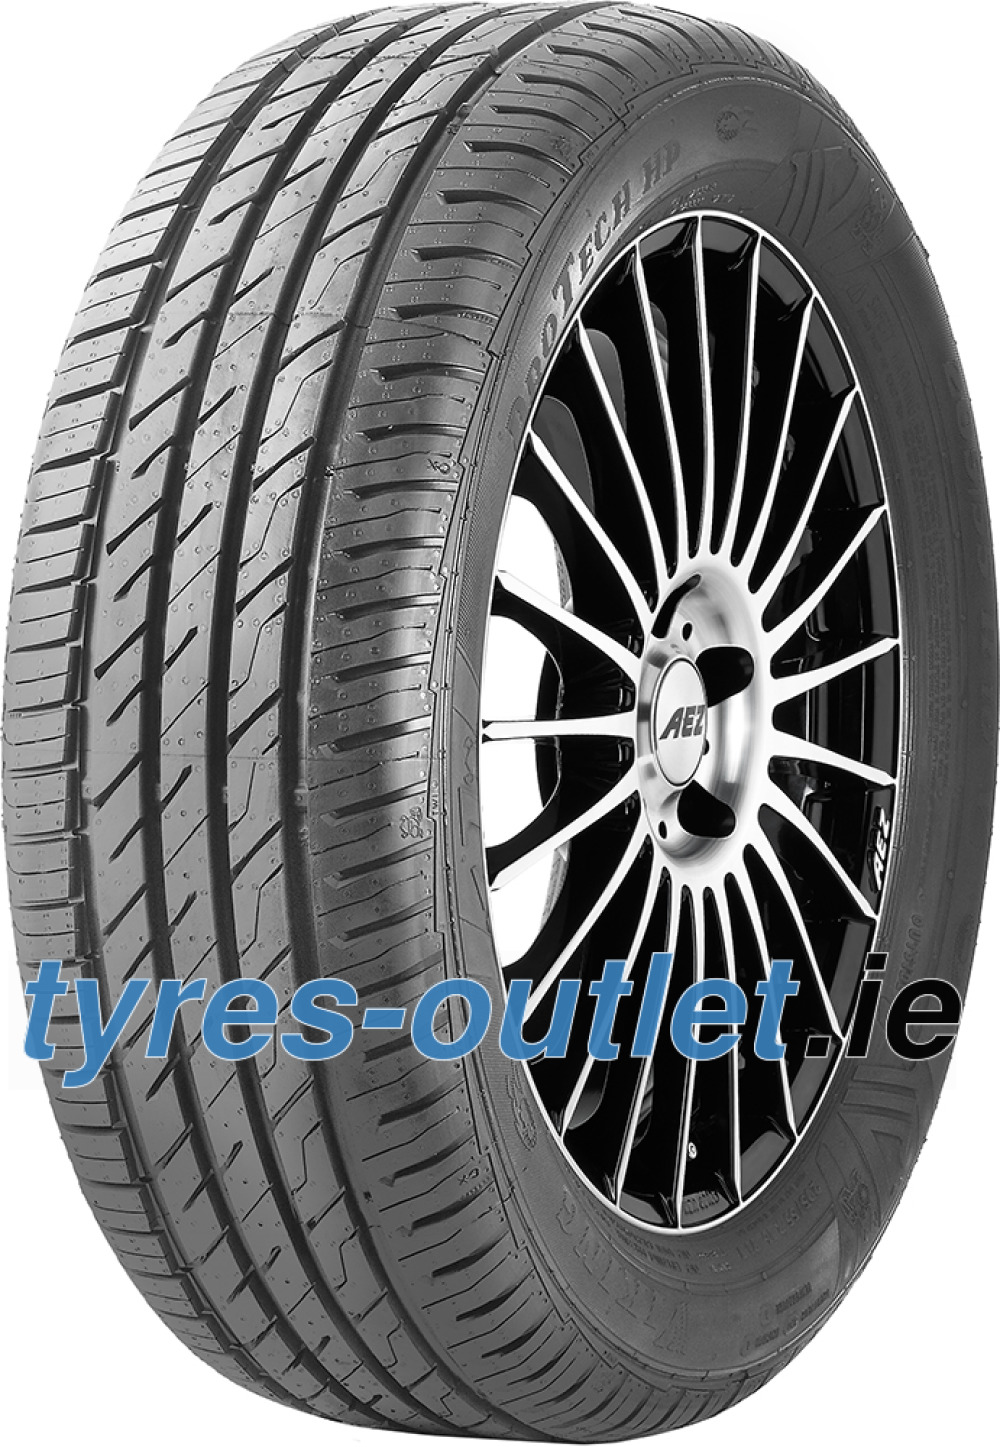 Viking ProTech HP ( 255/55 R18 109V XL with kerbing rib )